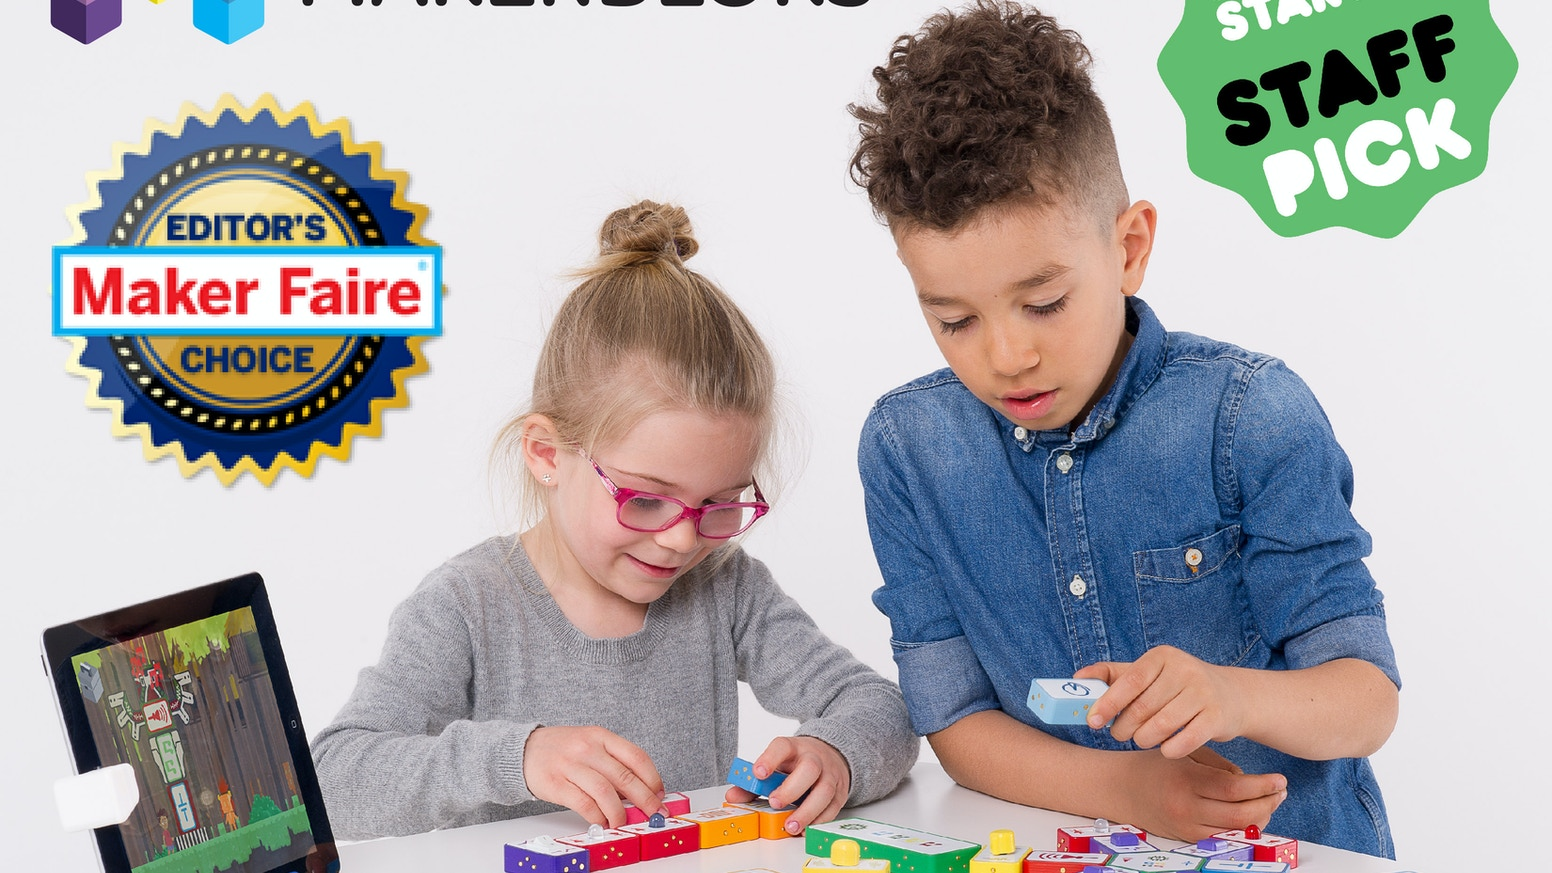 MakerBloks are reactive building blocks complimented by a tablet game that introduce children to the world of electronics.